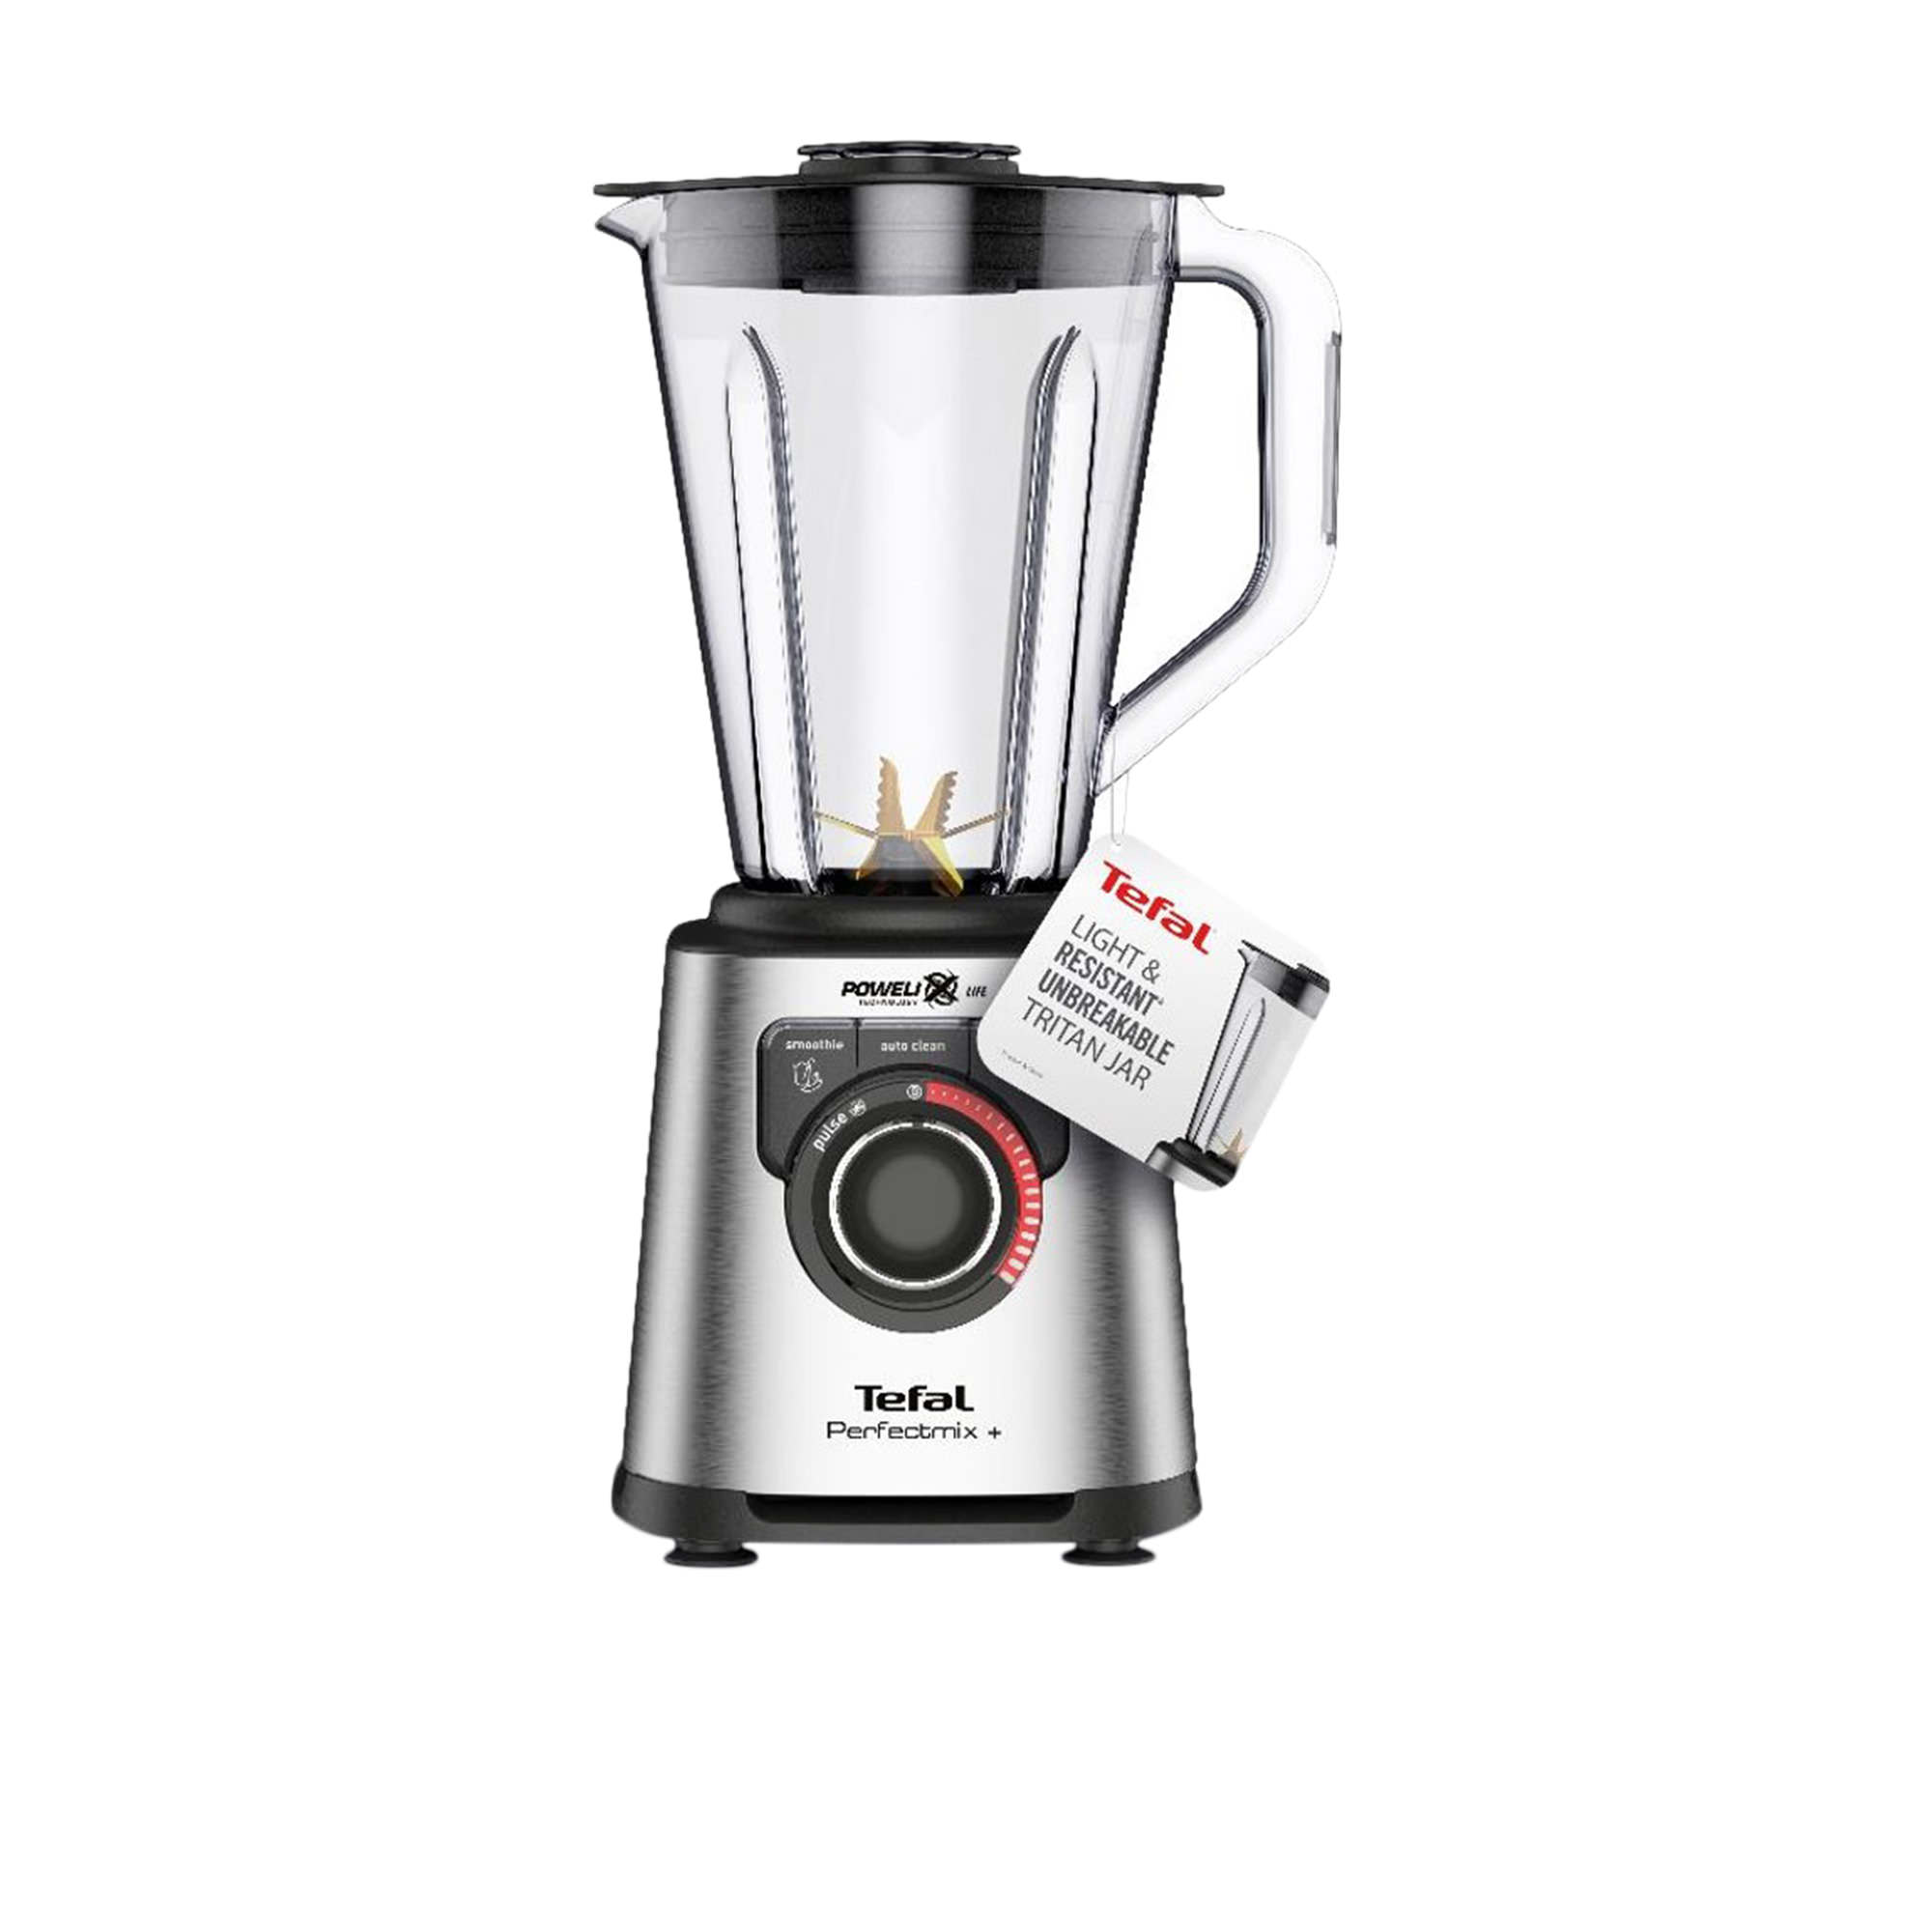 Tefal Perfectmix + Blender Stainless Steel